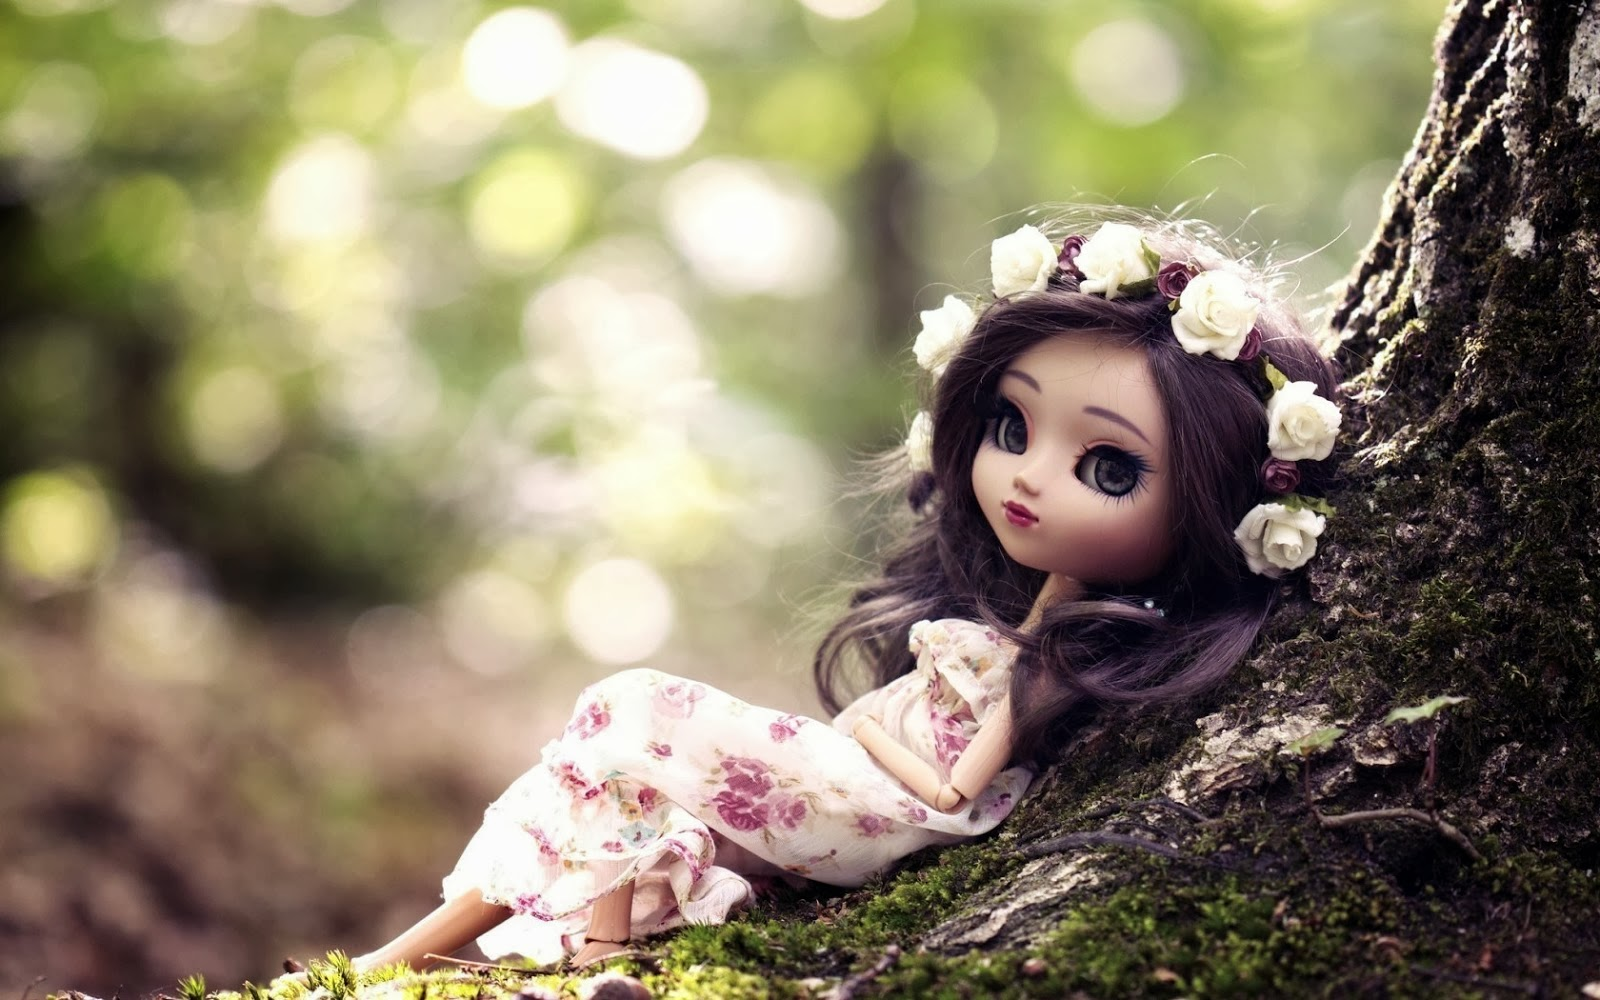 dolls by providing HD Wallpapers and Images of Cute Dolls which are 1600x1000